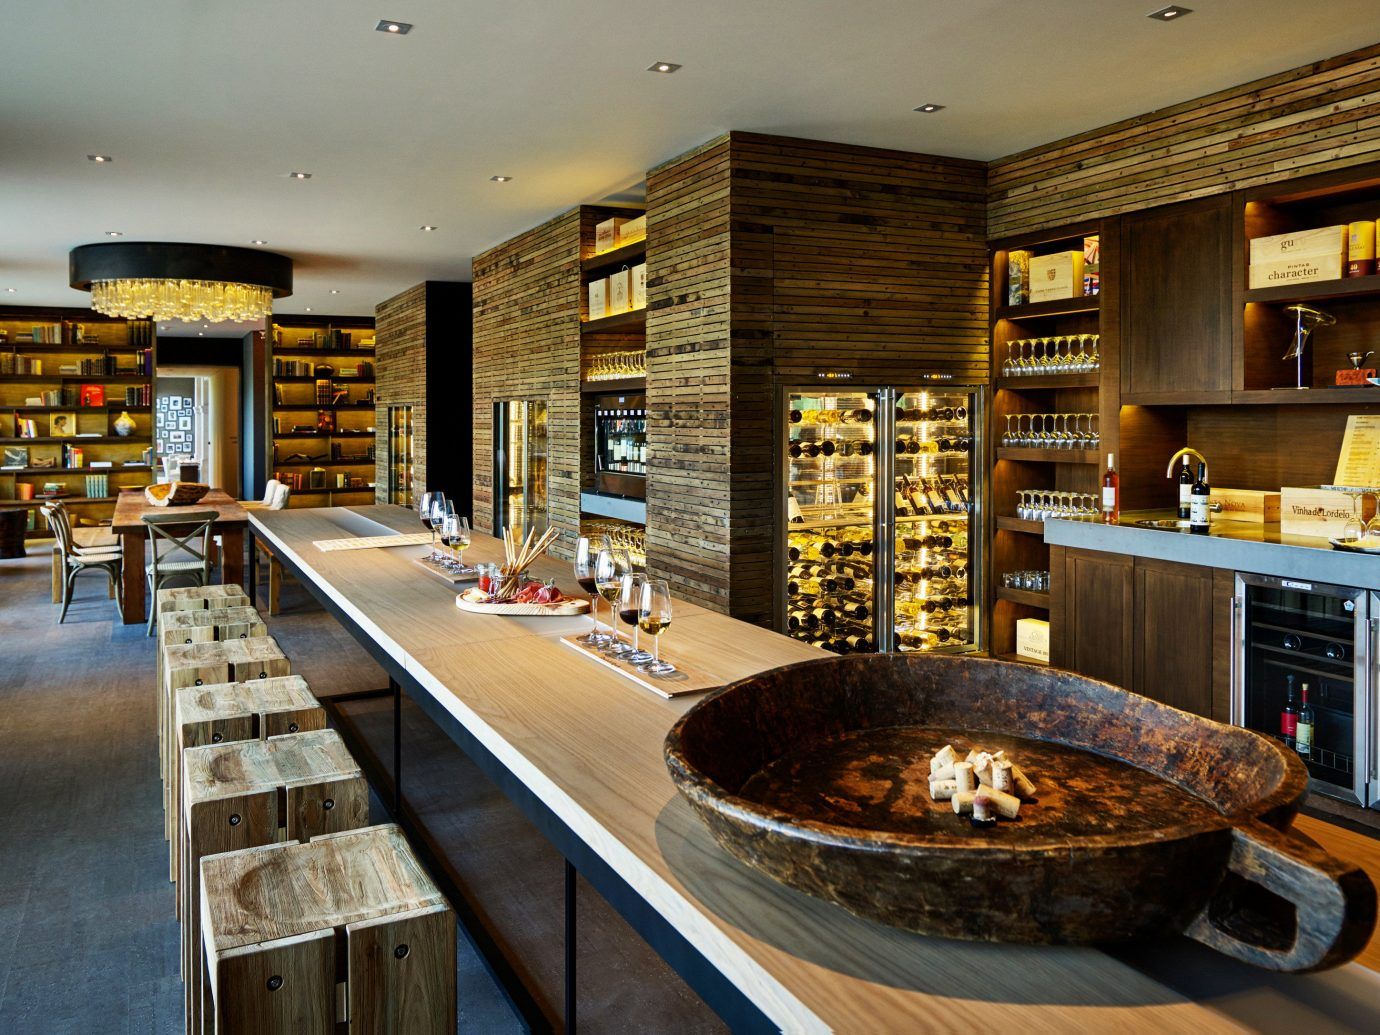 Bar Food + Drink Hotels indoor table Living ceiling building room bakery interior design restaurant estate home meal grocery store retail wood furniture Island